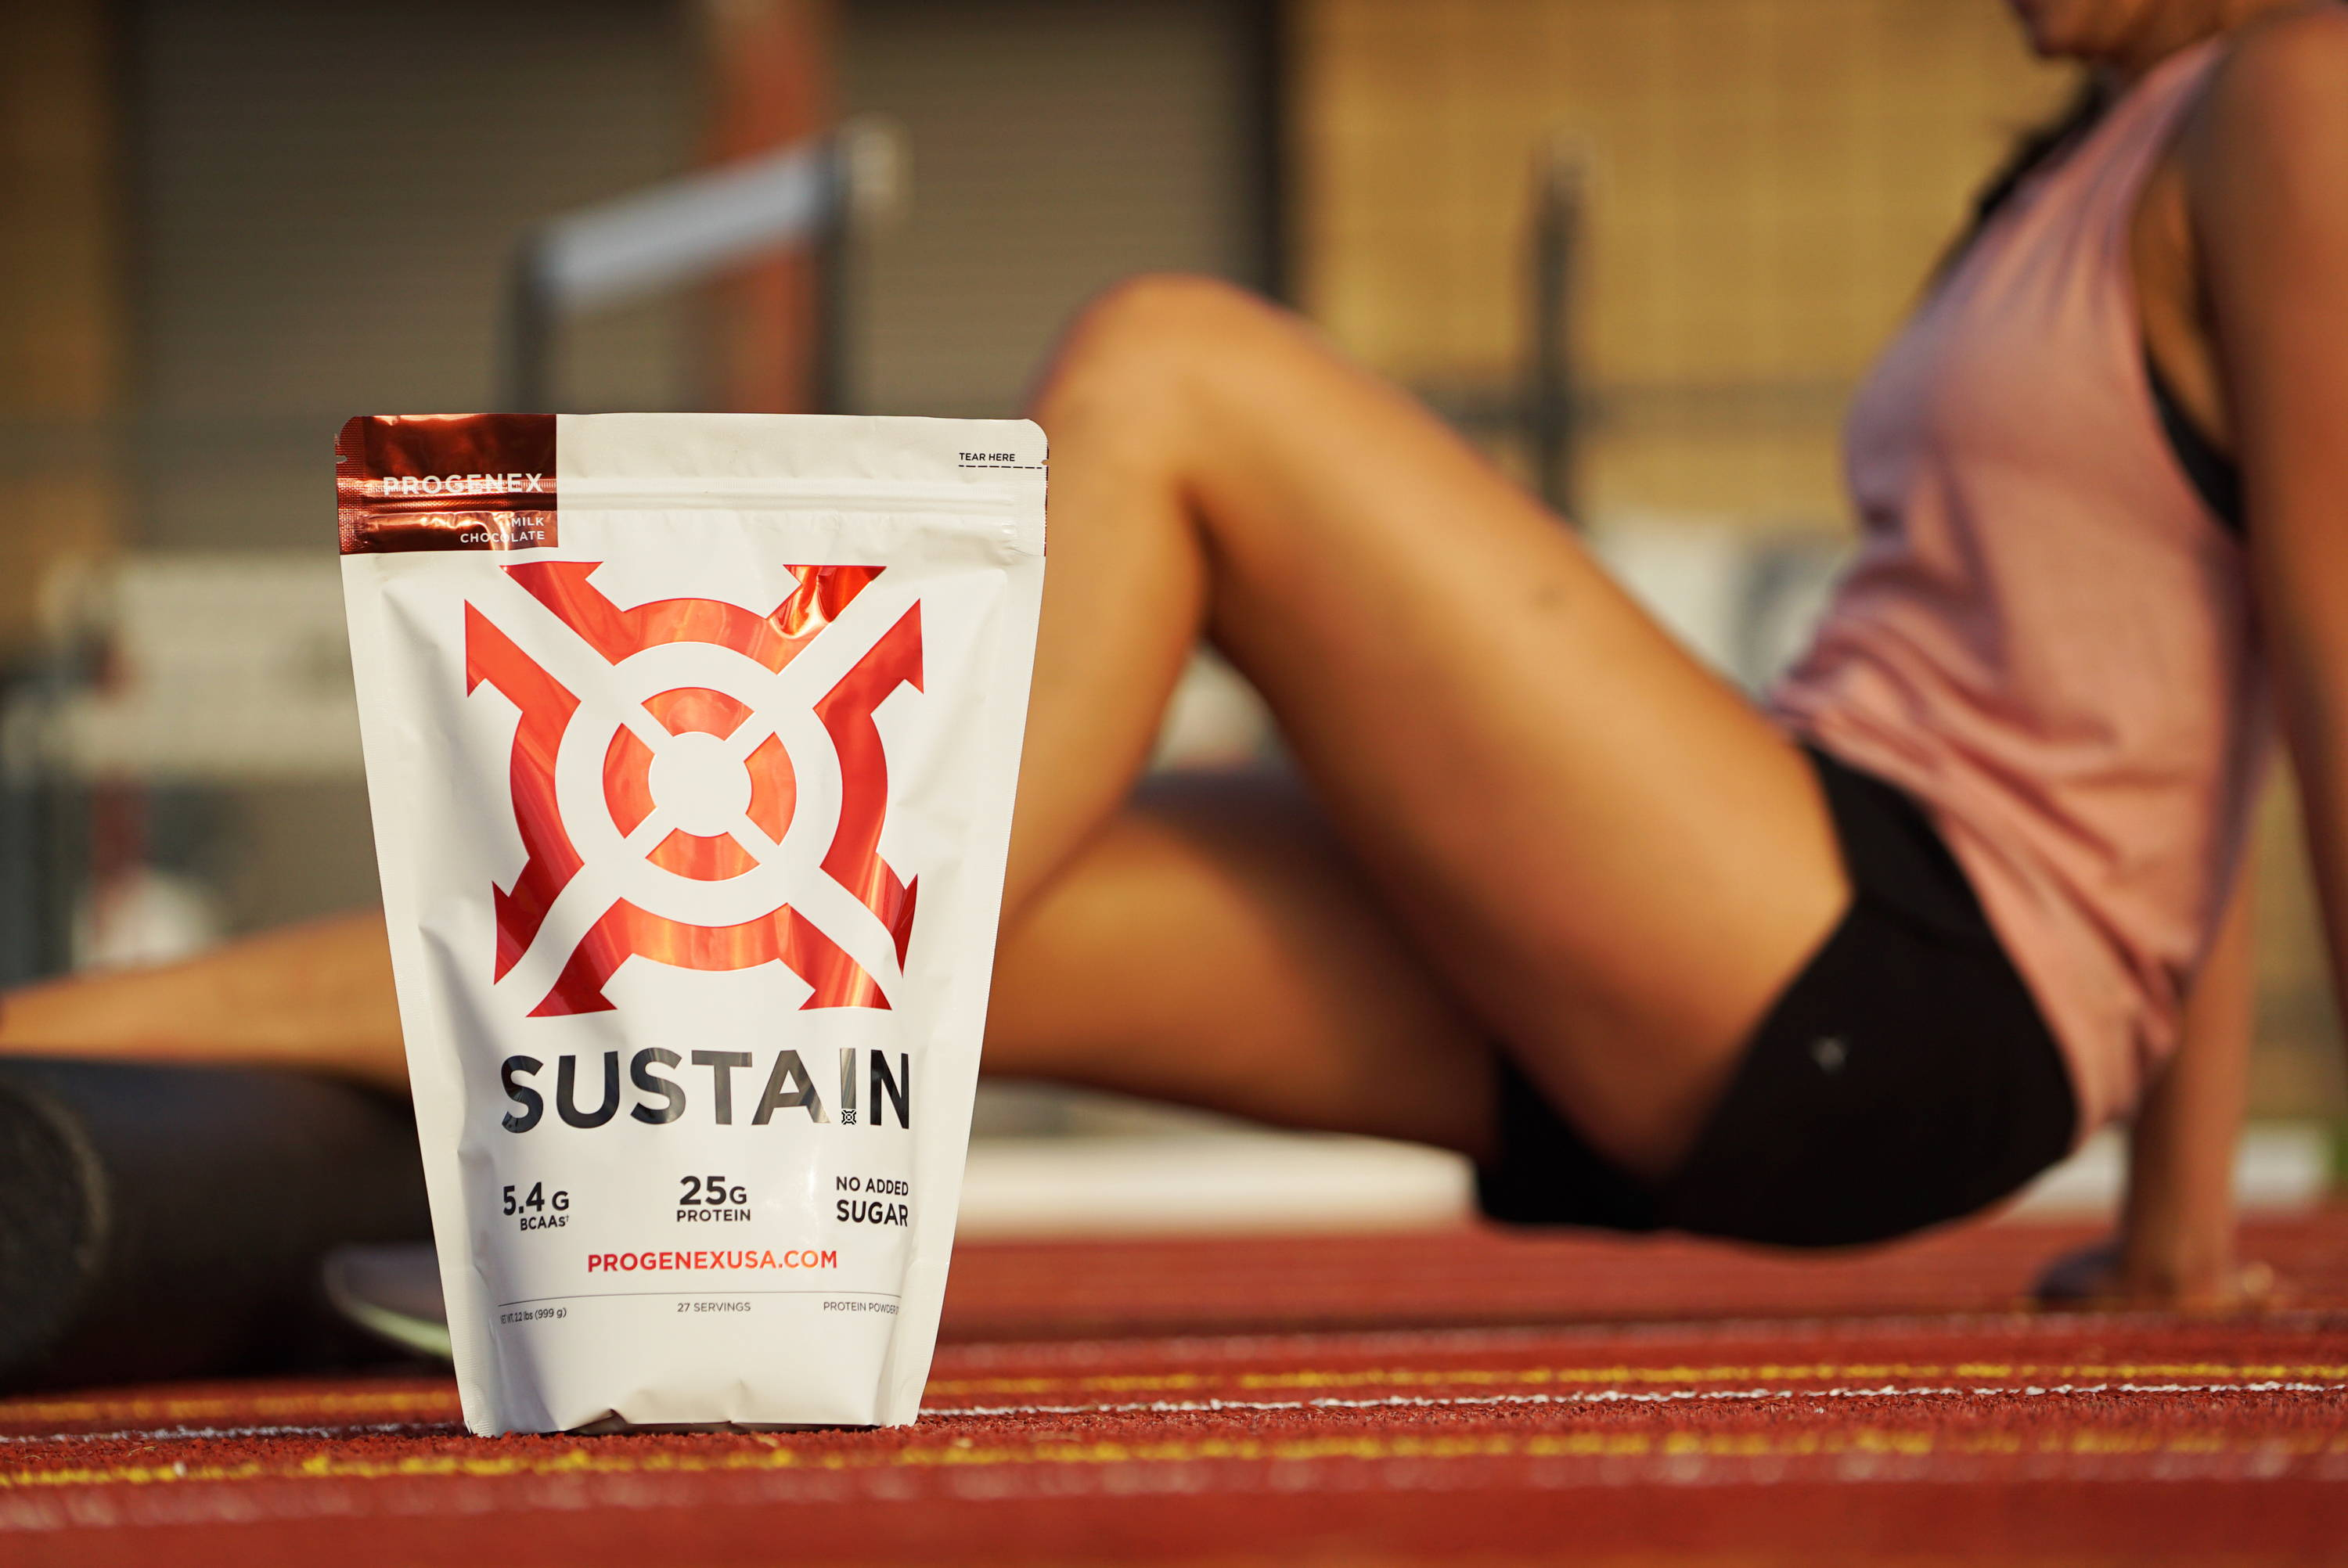 sustain bag with woman rolling out in the background